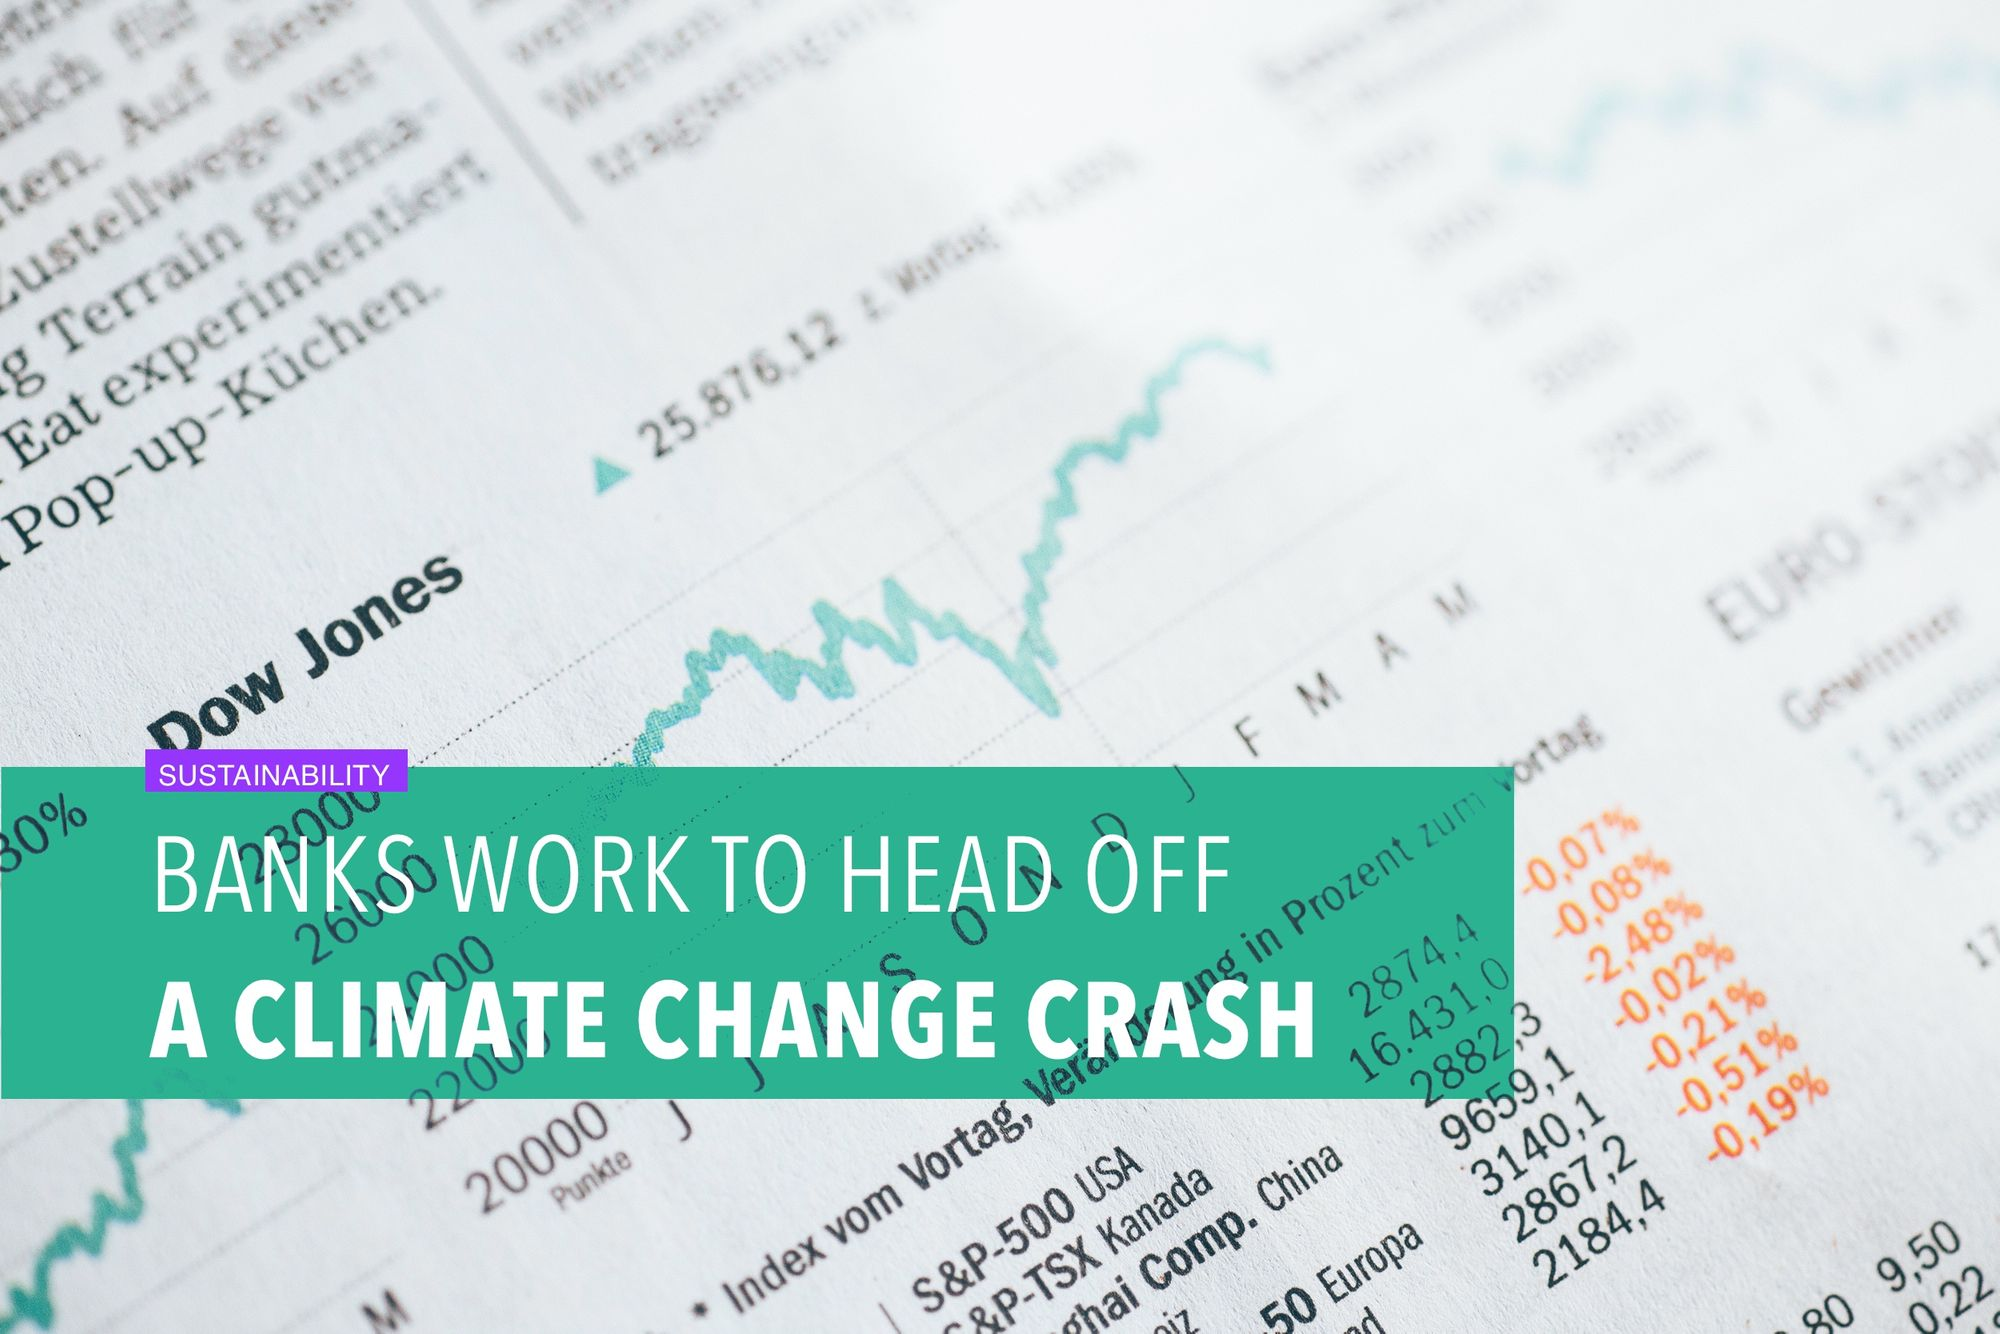 Banks work to head off a climate change crash